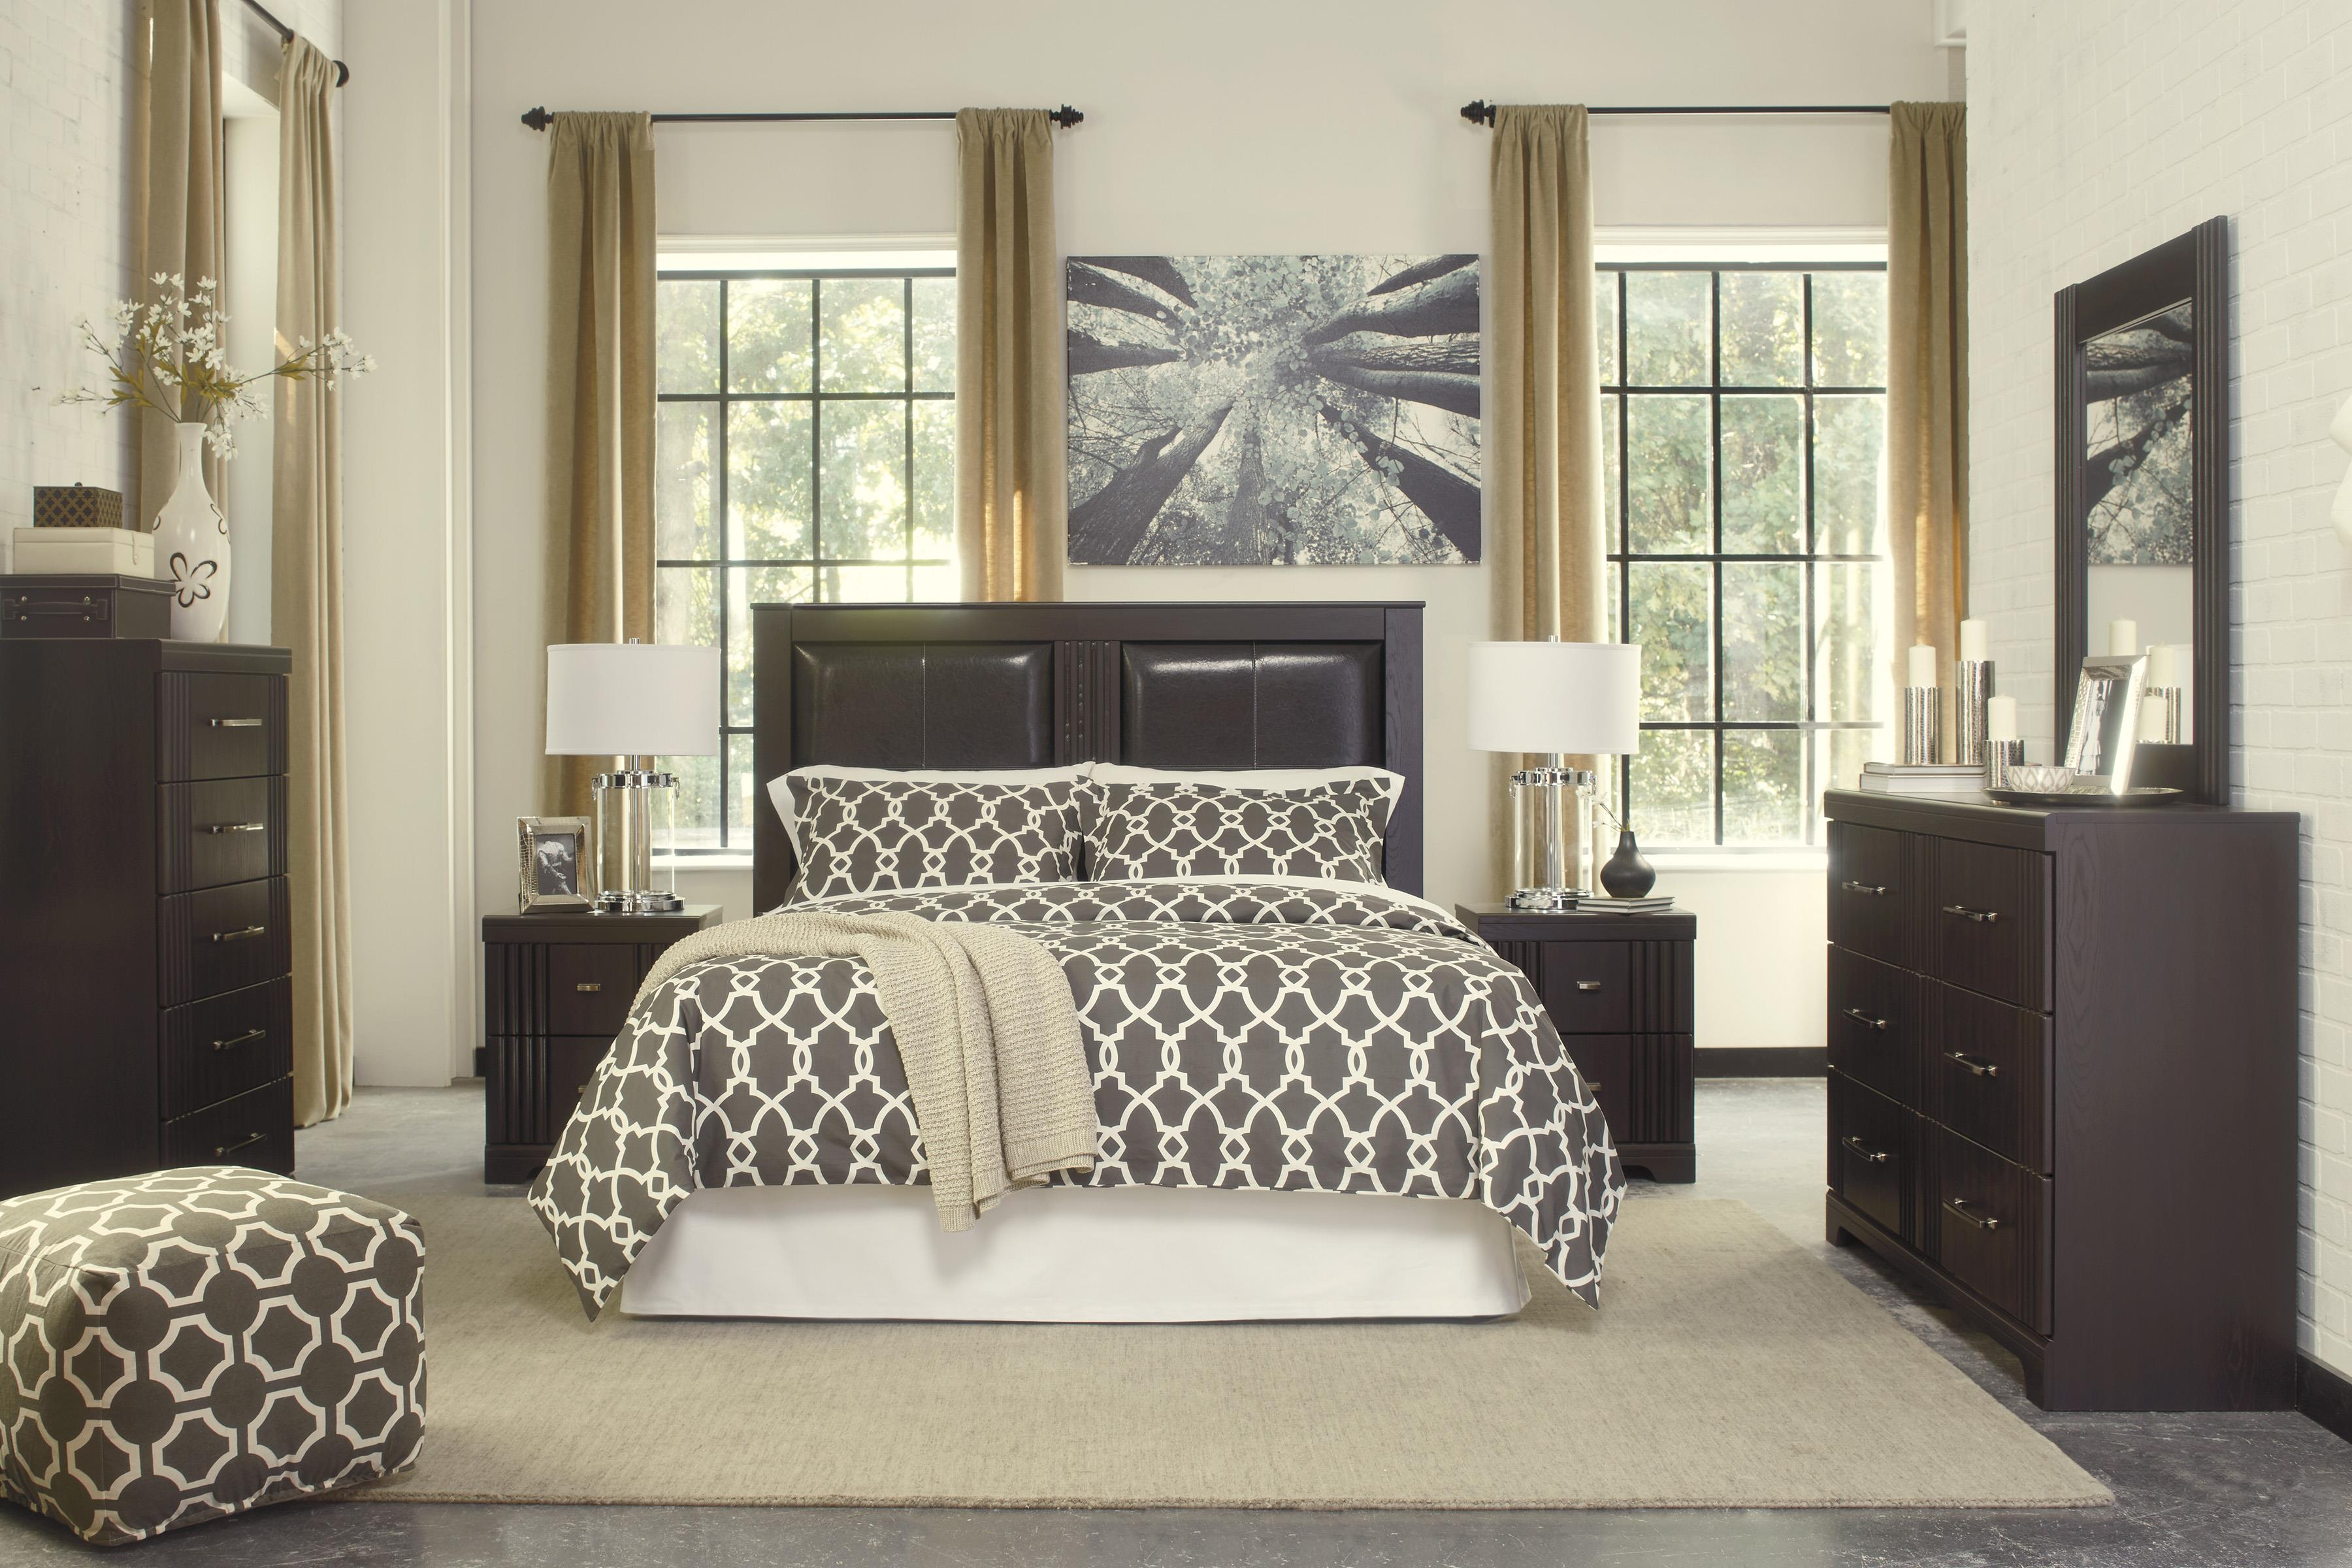 Signature Design by Ashley Tadlyn Queen/Full Bedroom Group - Item Number: B146 Q Bedroom Group 1